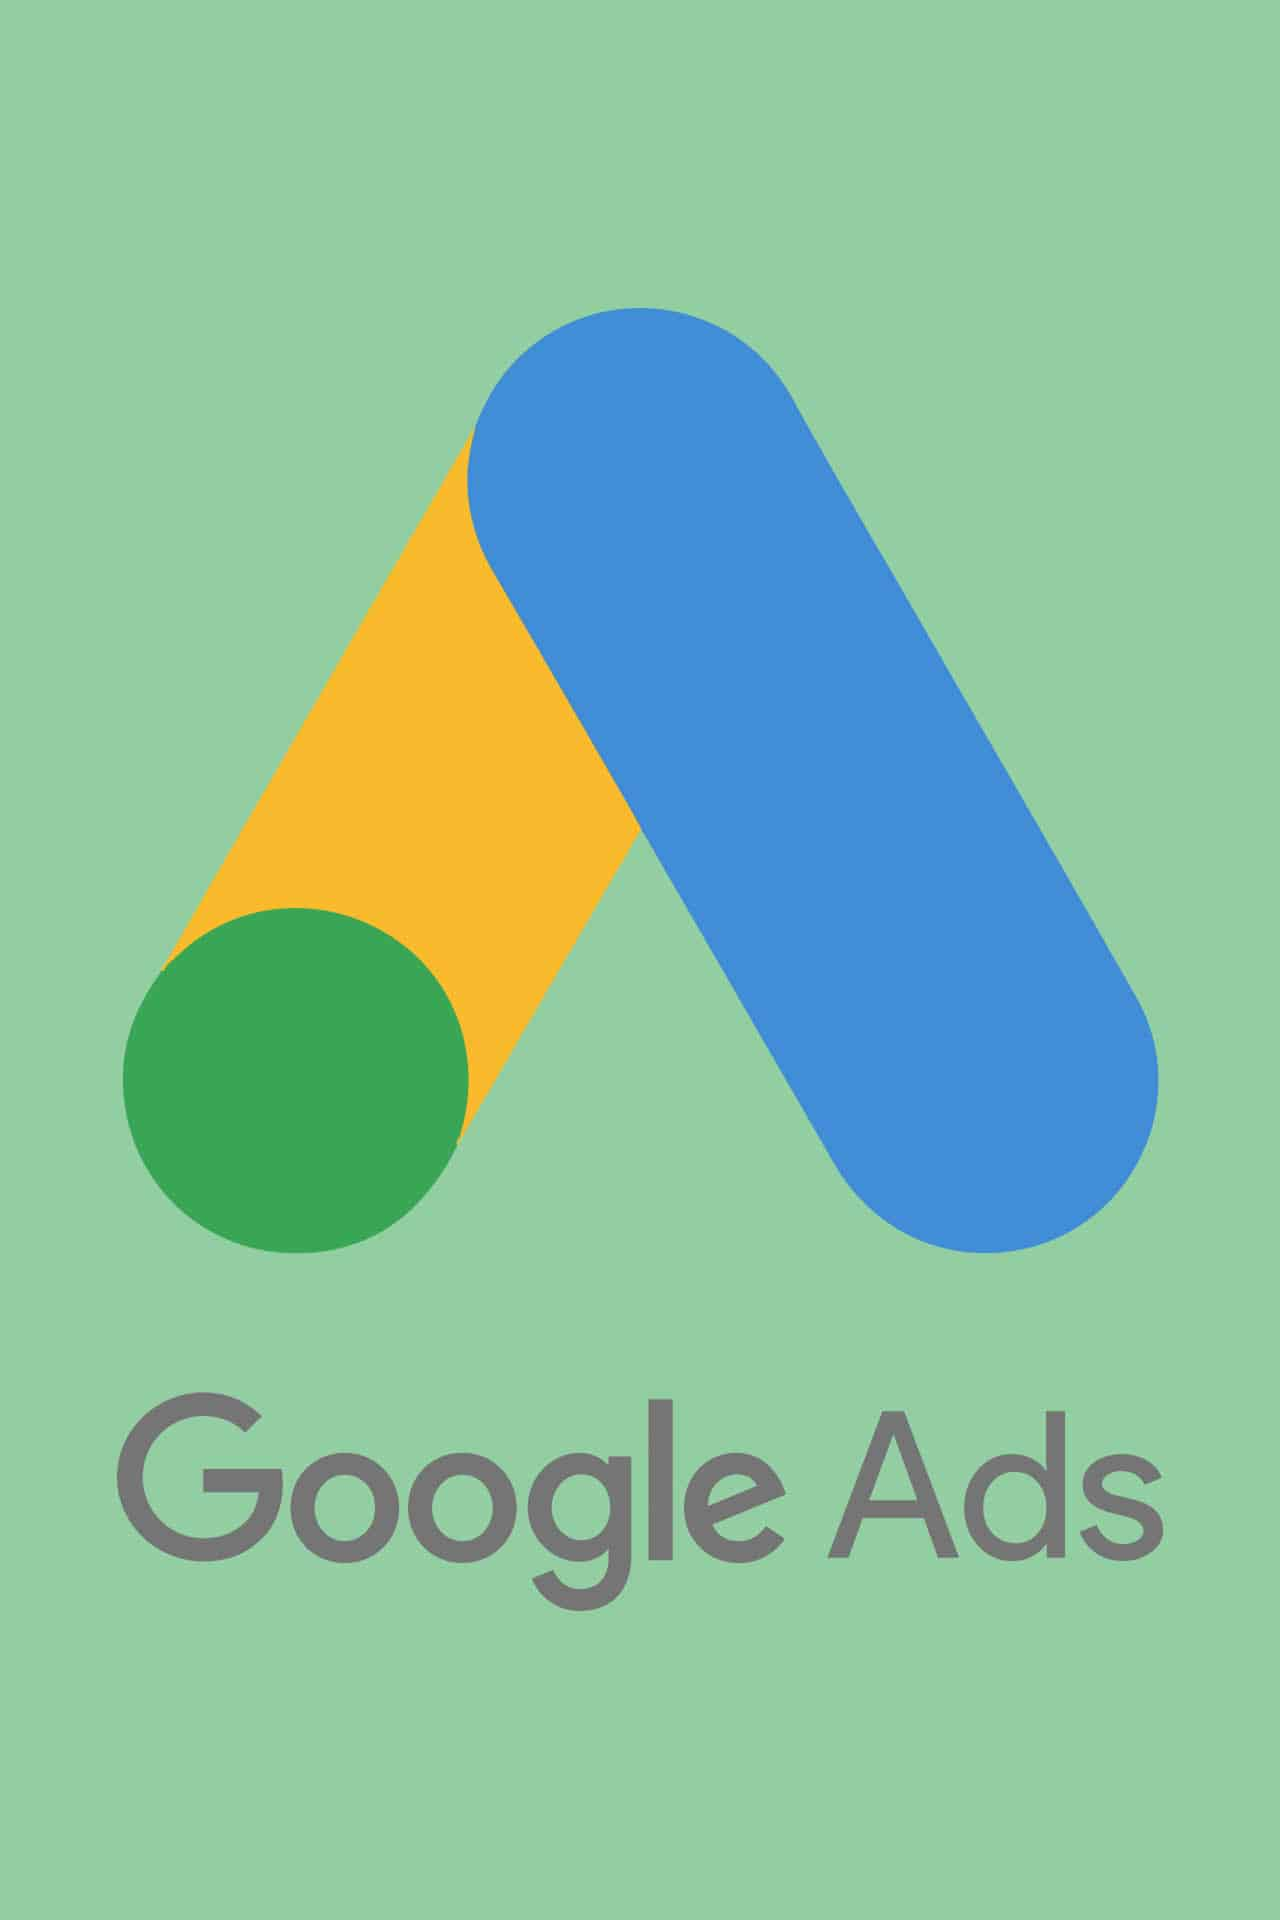 Google Ads Editor si aggiorna e introduce 4 feature